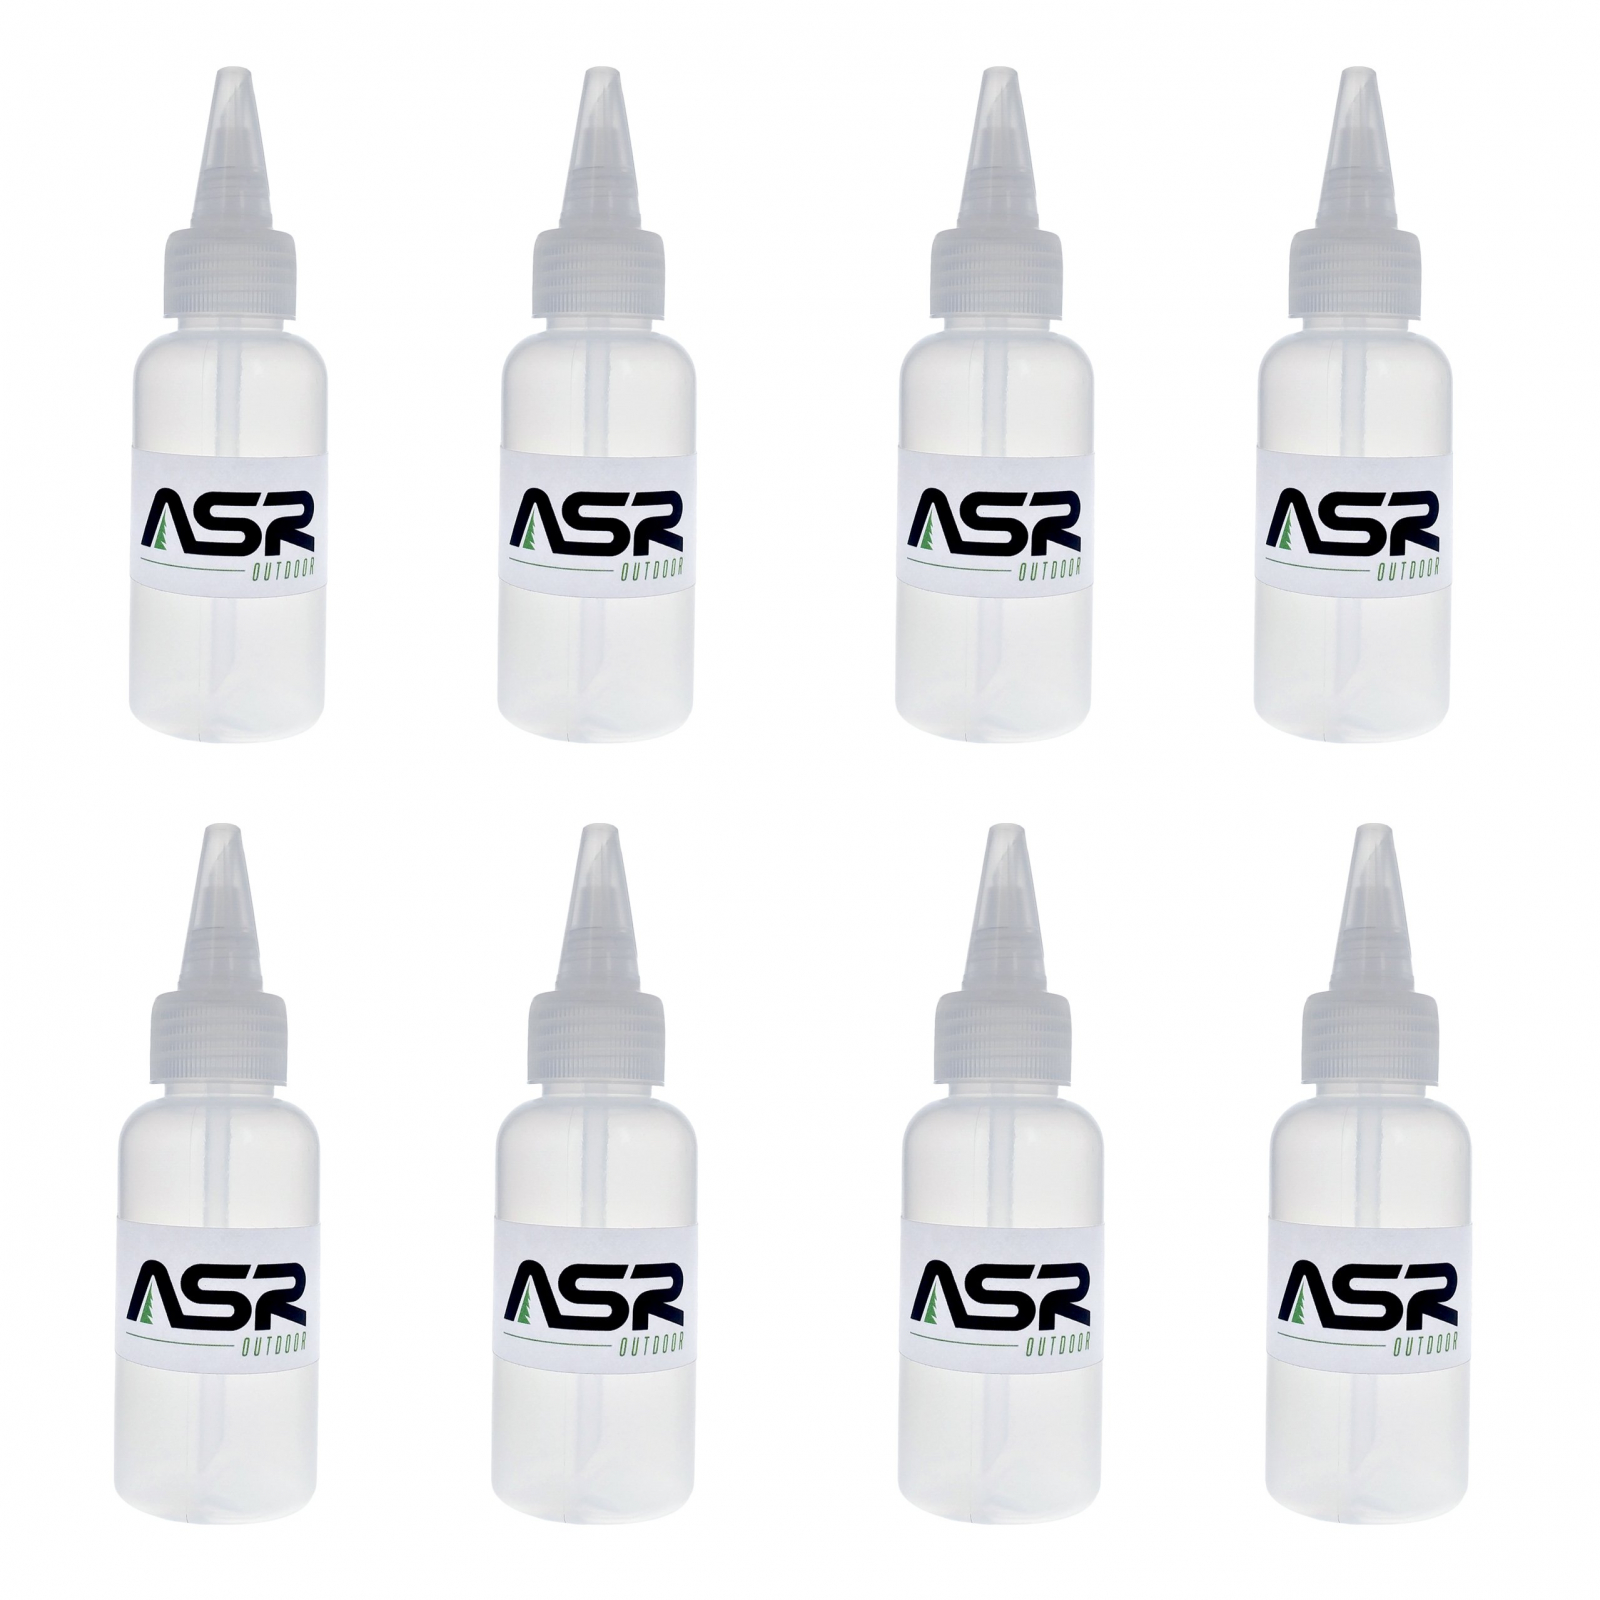 ASR Outdoor Compact 3oz Gold Snifter Squeeze Bottle - 8 Pack